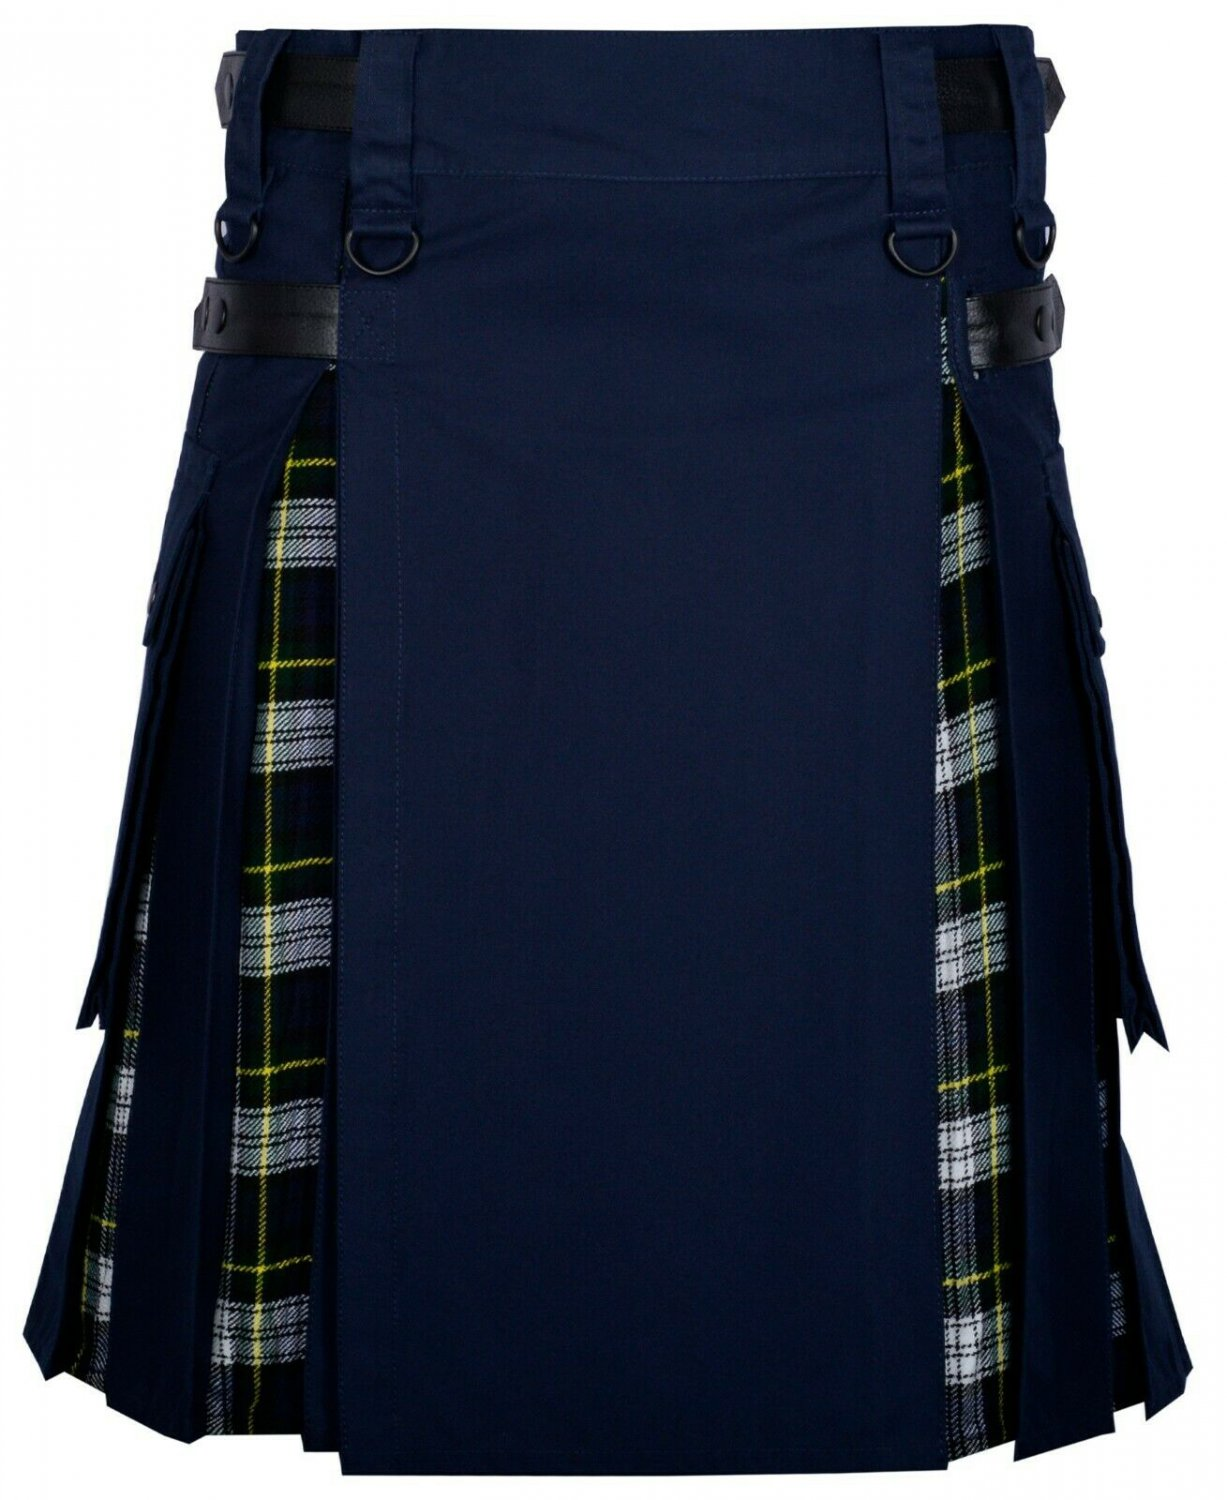 50 Size Navy Blue Cotton-dress Gordon tartan Scottish Utility Cargo Hybrid Cotton Kilt For Men